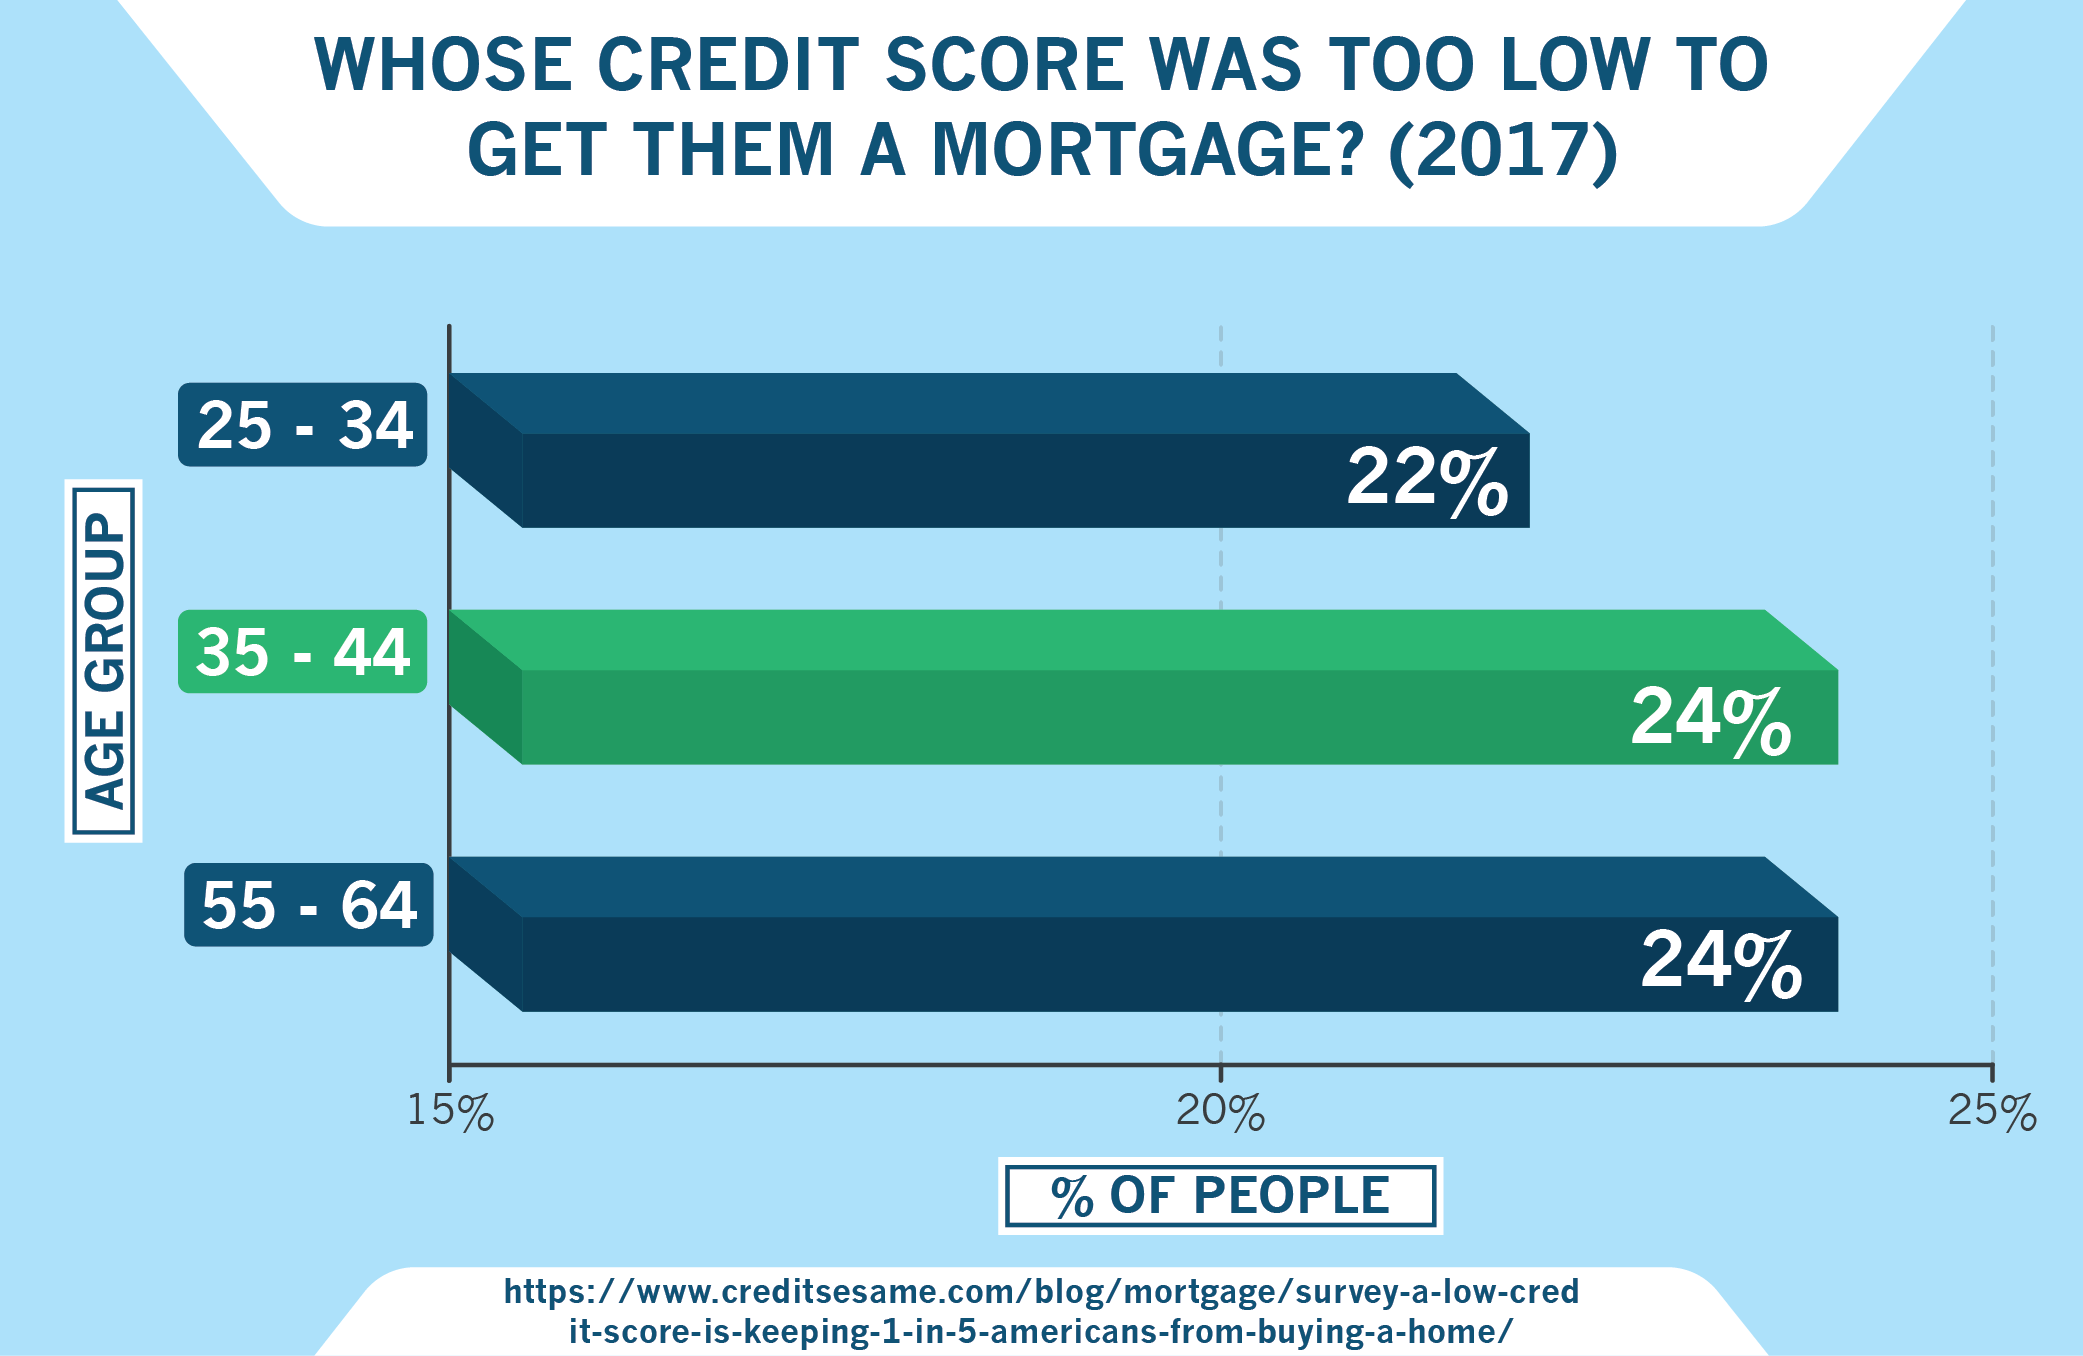 Survey: Whose Credit Score Was Too Low to Get Them a Mortgage?